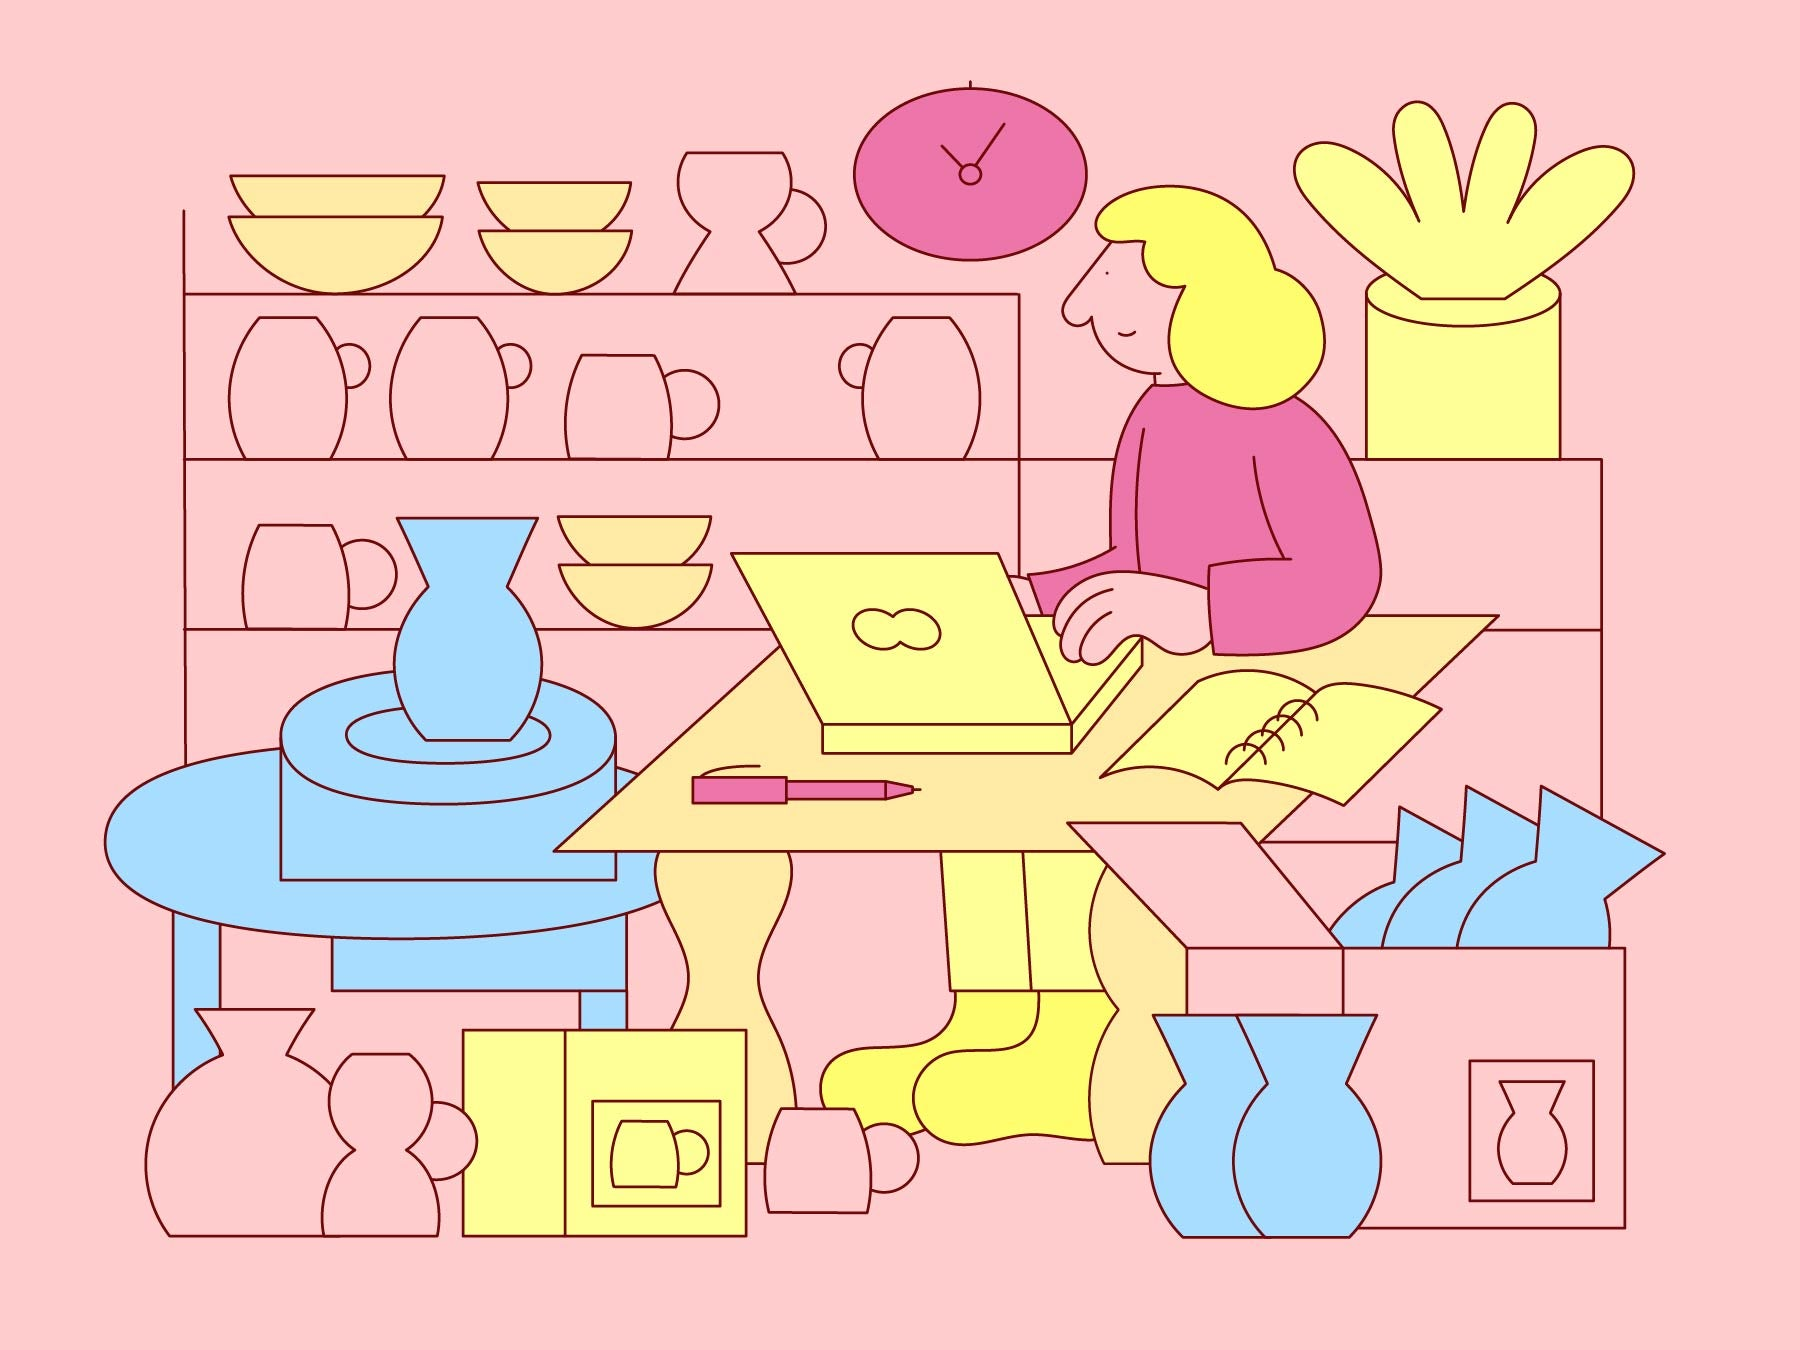 Illustration of a woman working at her desk on her online business